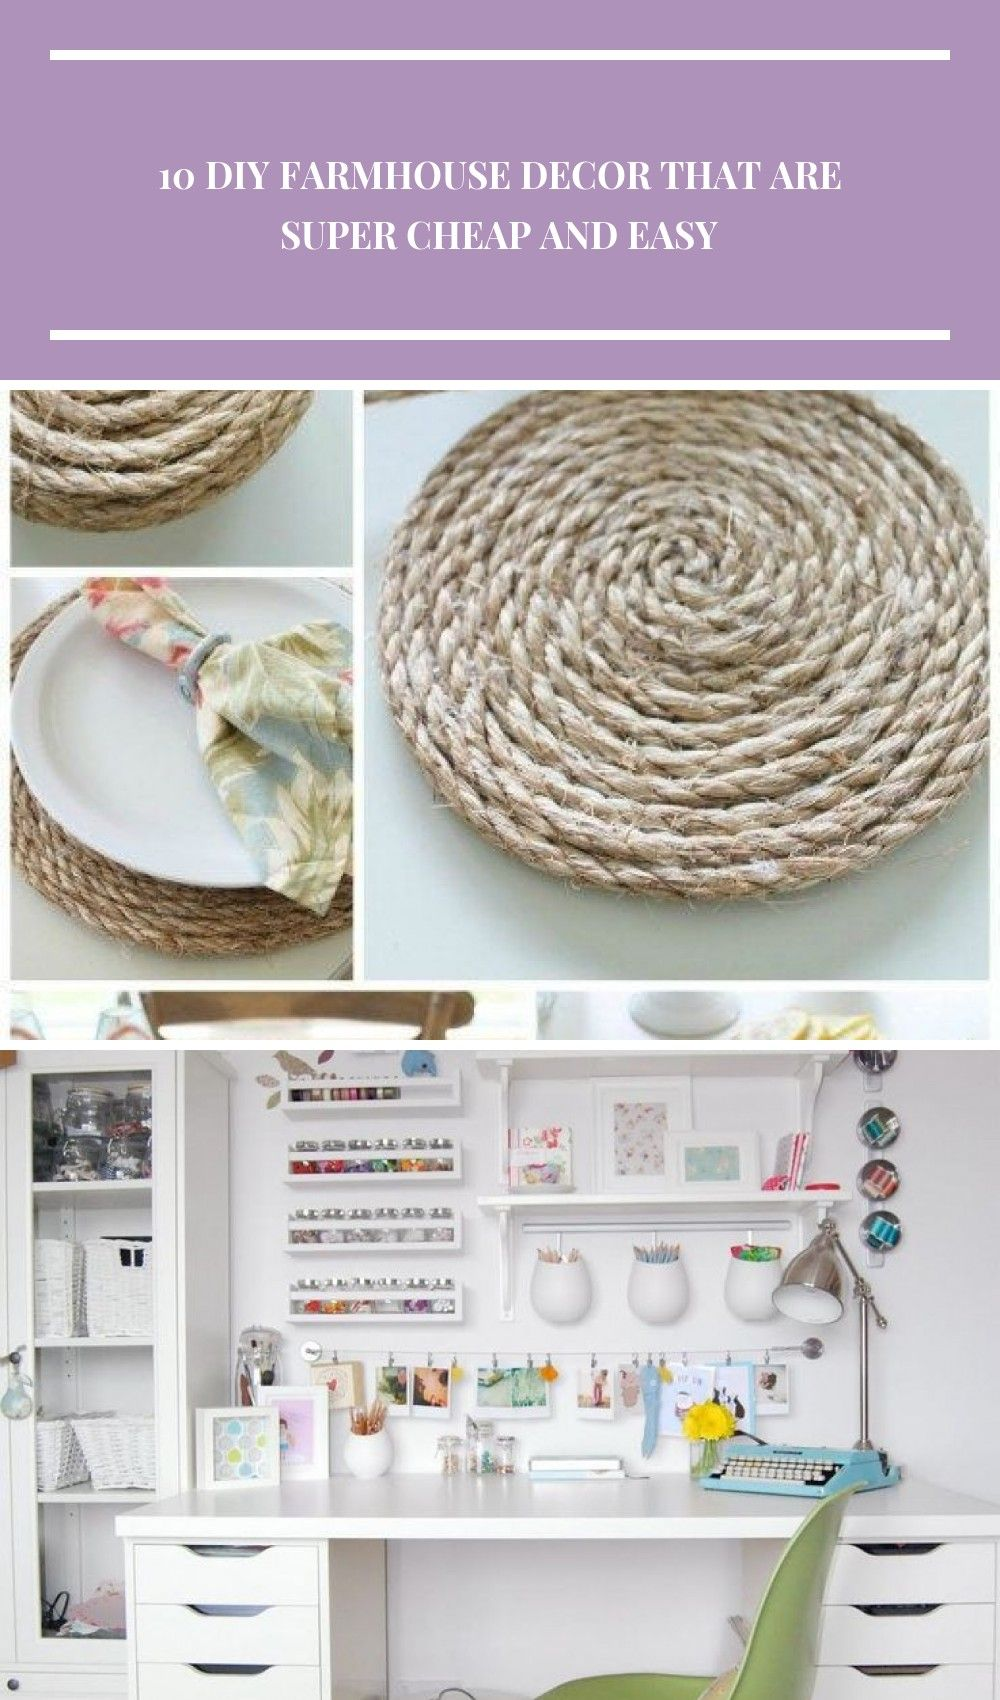 Super Easy And Cheap Diy Farmhouse Decor Ideas For Your Home Pottery Barn Inspired Round Jute Placemats And Others Pottery Barn Inspired Cheap Diy Home Decor